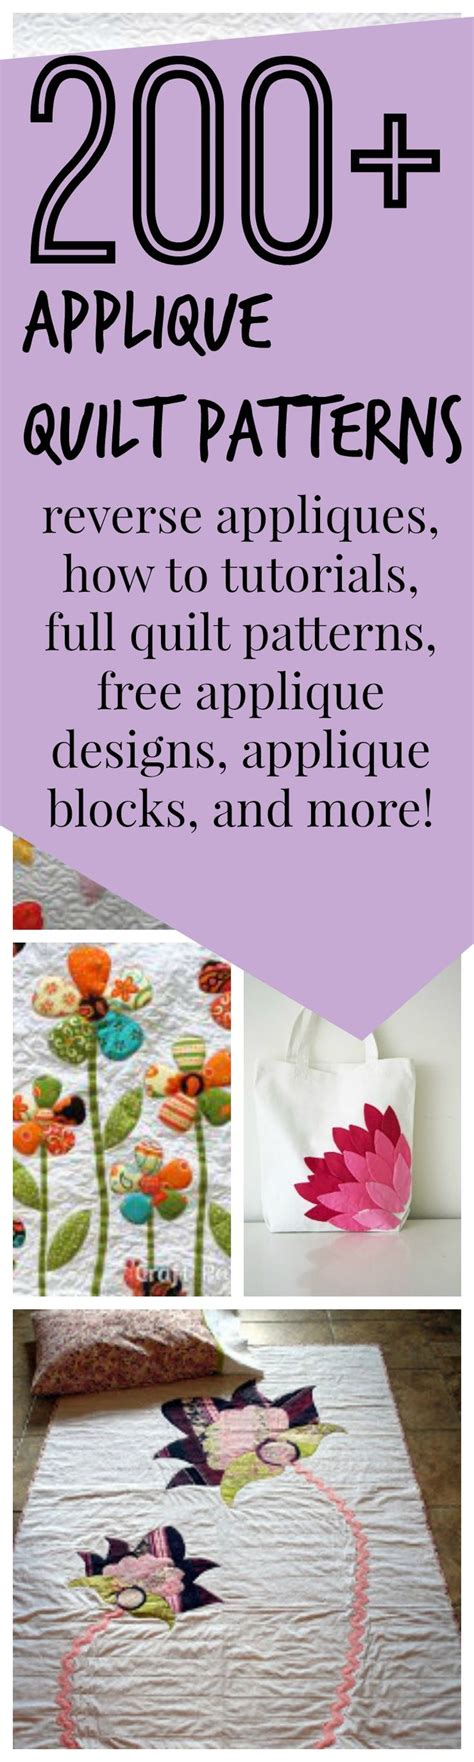 free applique best 25 applique quilts ideas on quilting